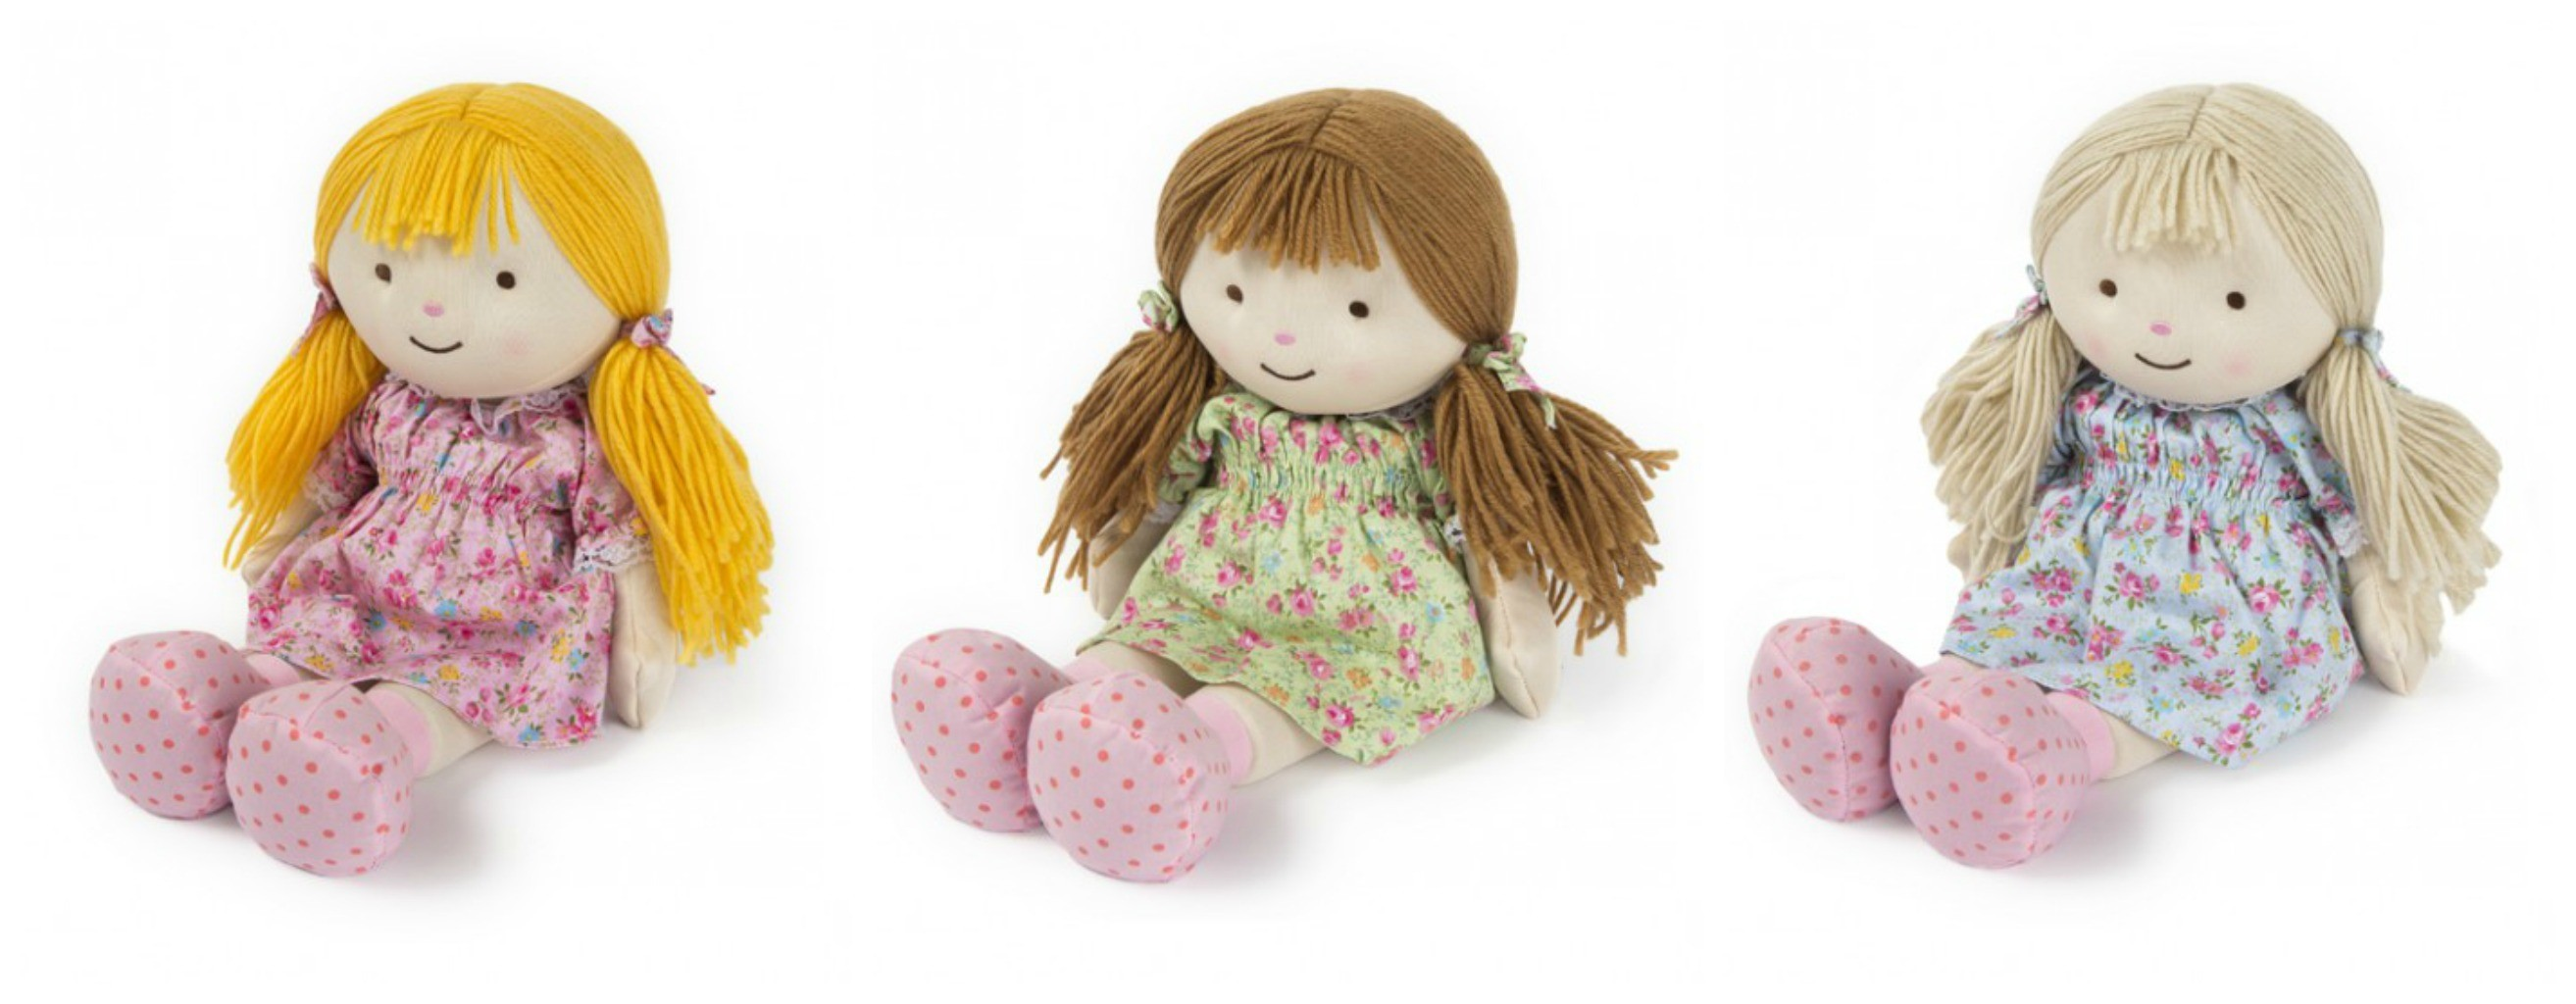 Warmies® Warmheart Heatable Doll